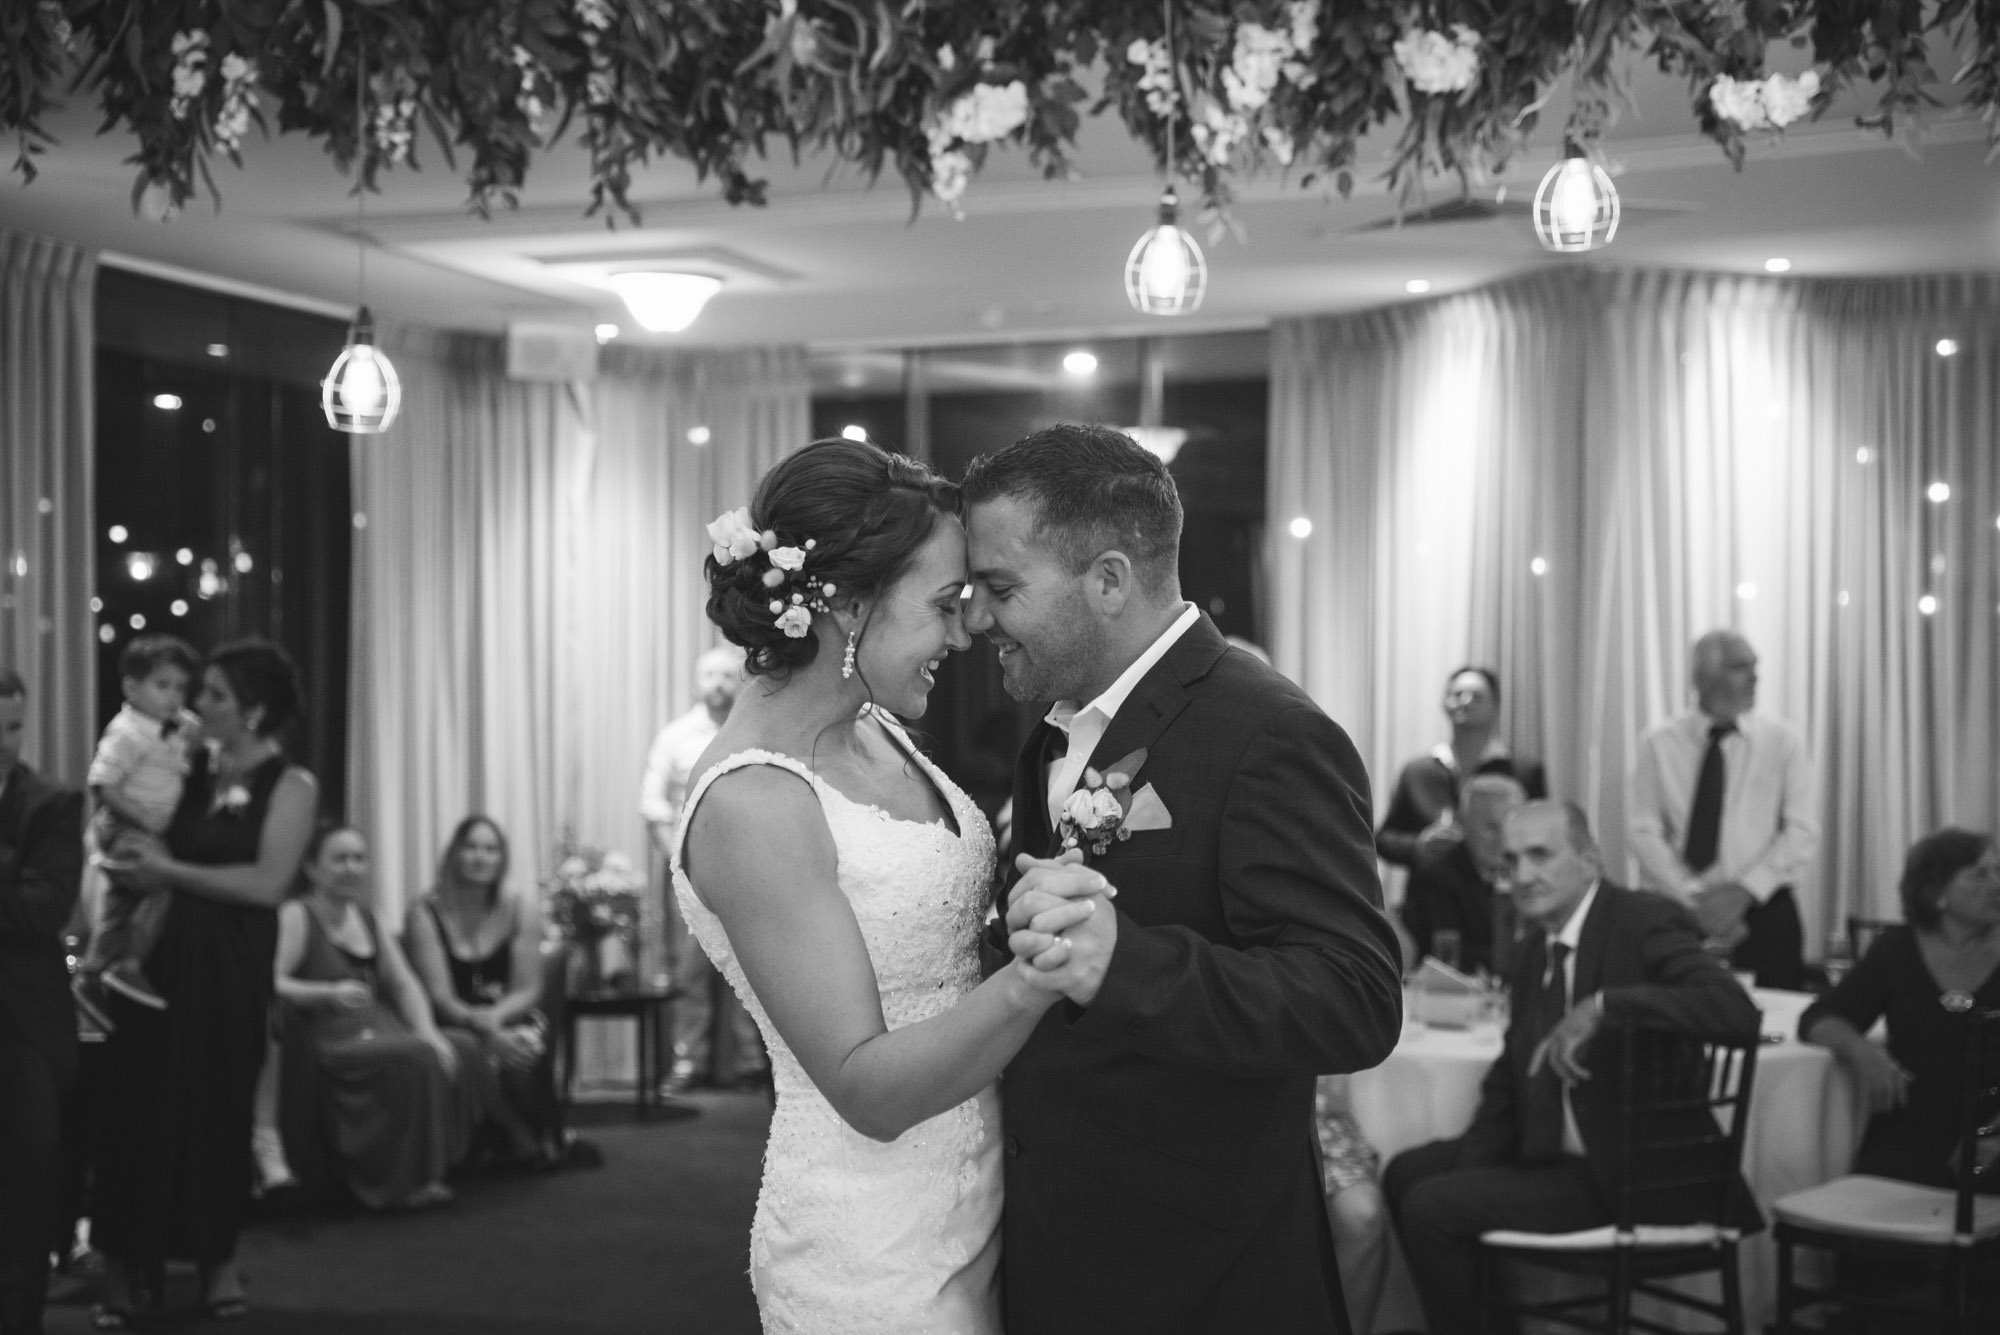 Angie-Roe-Photography-Wedding-Perth-Northam-Wheatbelt-Country-Rural (111).jpg